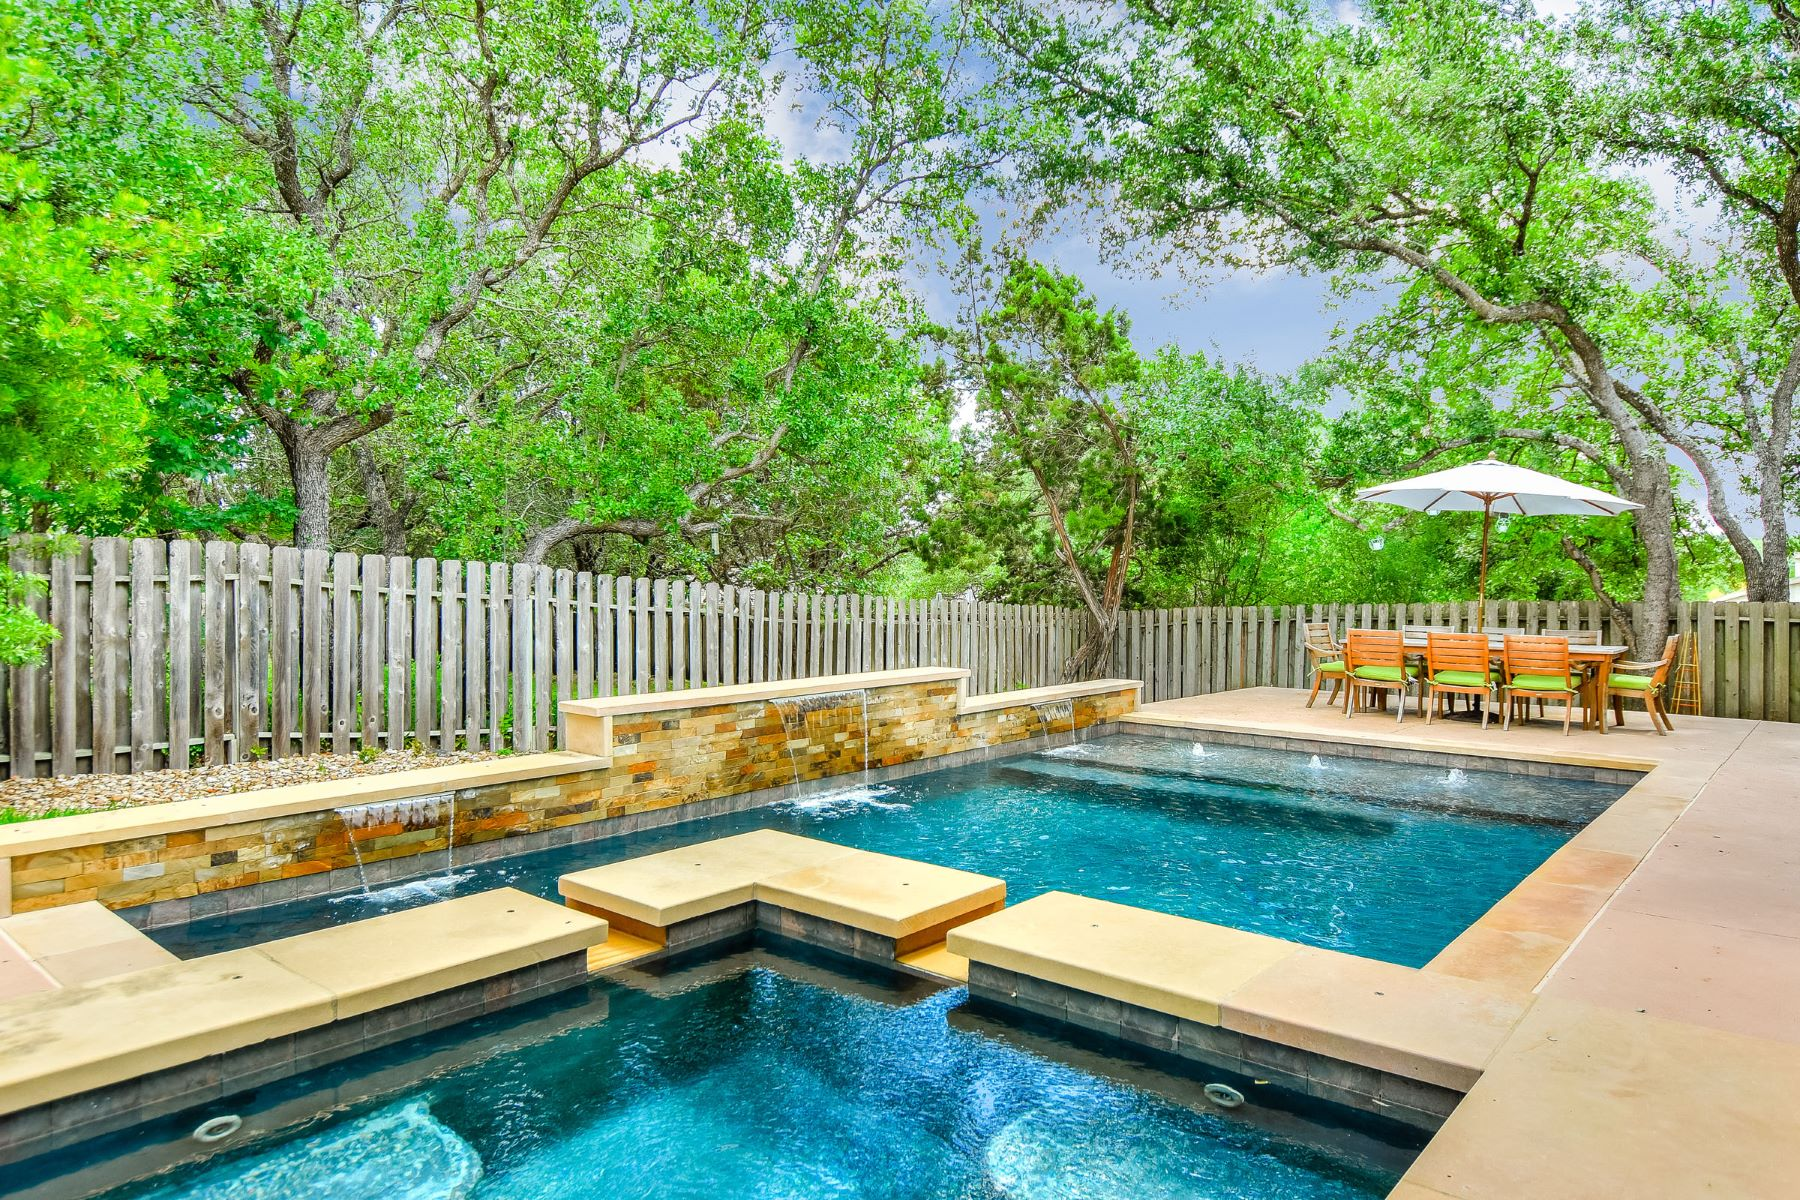 Additional photo for property listing at Lakeway Living with Pool 852 Sunfish St Lakeway, Texas 78738 United States